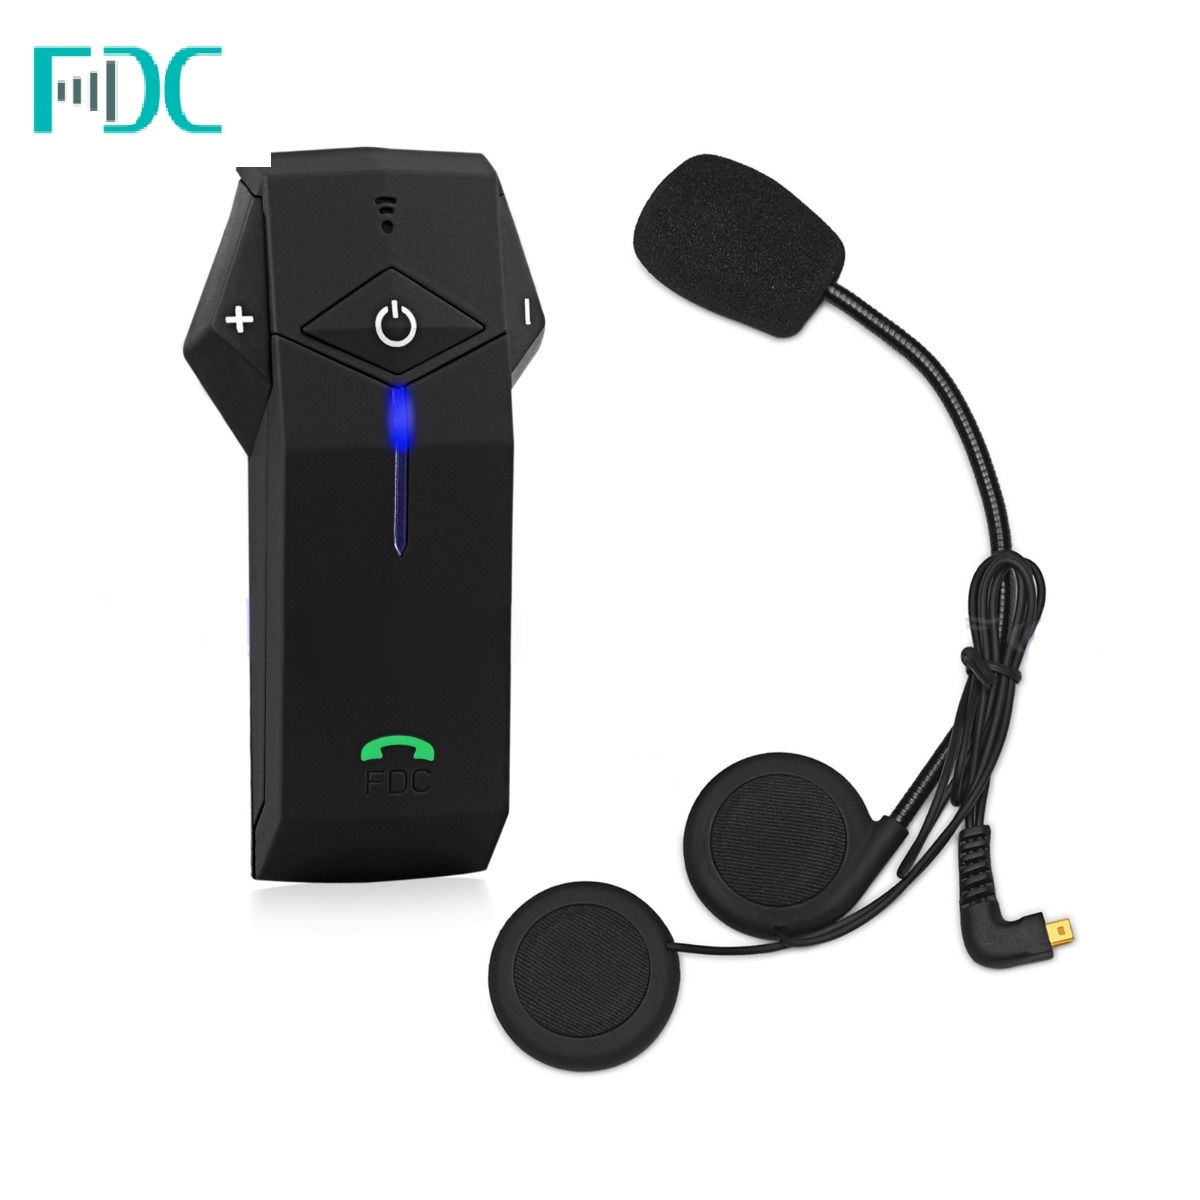 colo rc motorrad bluetooth 1000m gegensprechanlage headset. Black Bedroom Furniture Sets. Home Design Ideas